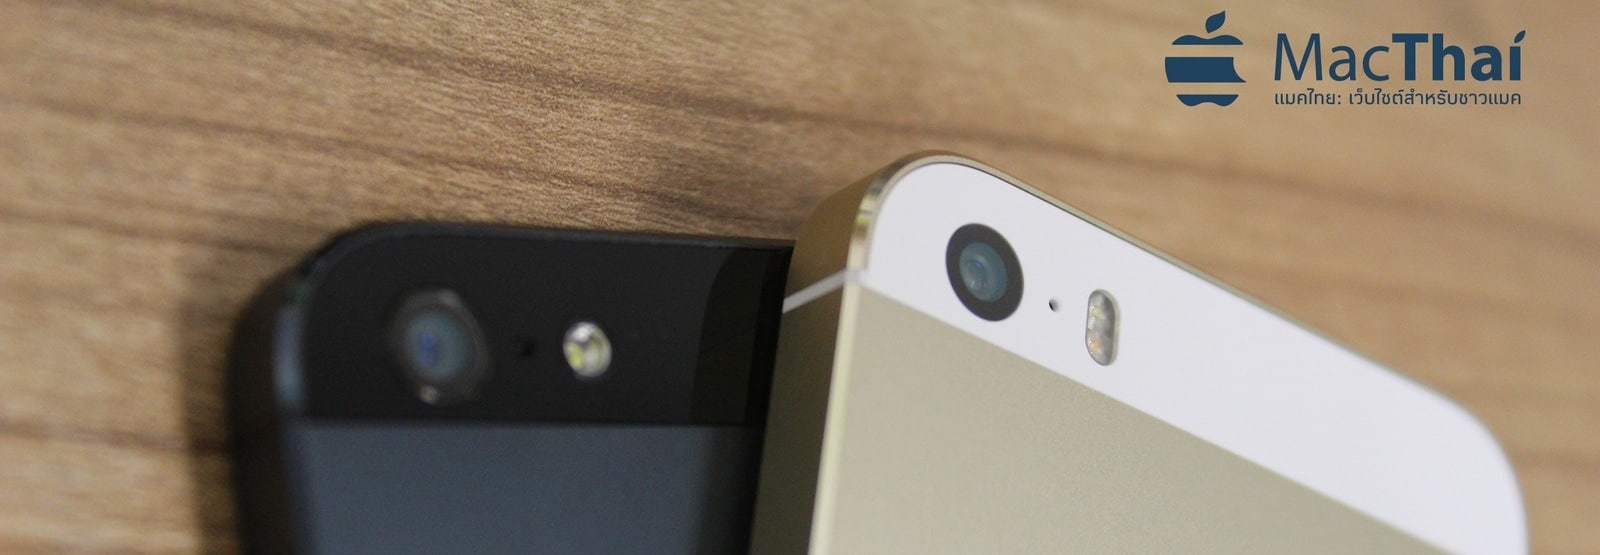 macthai-iphone-5s-gold-review-006-wide